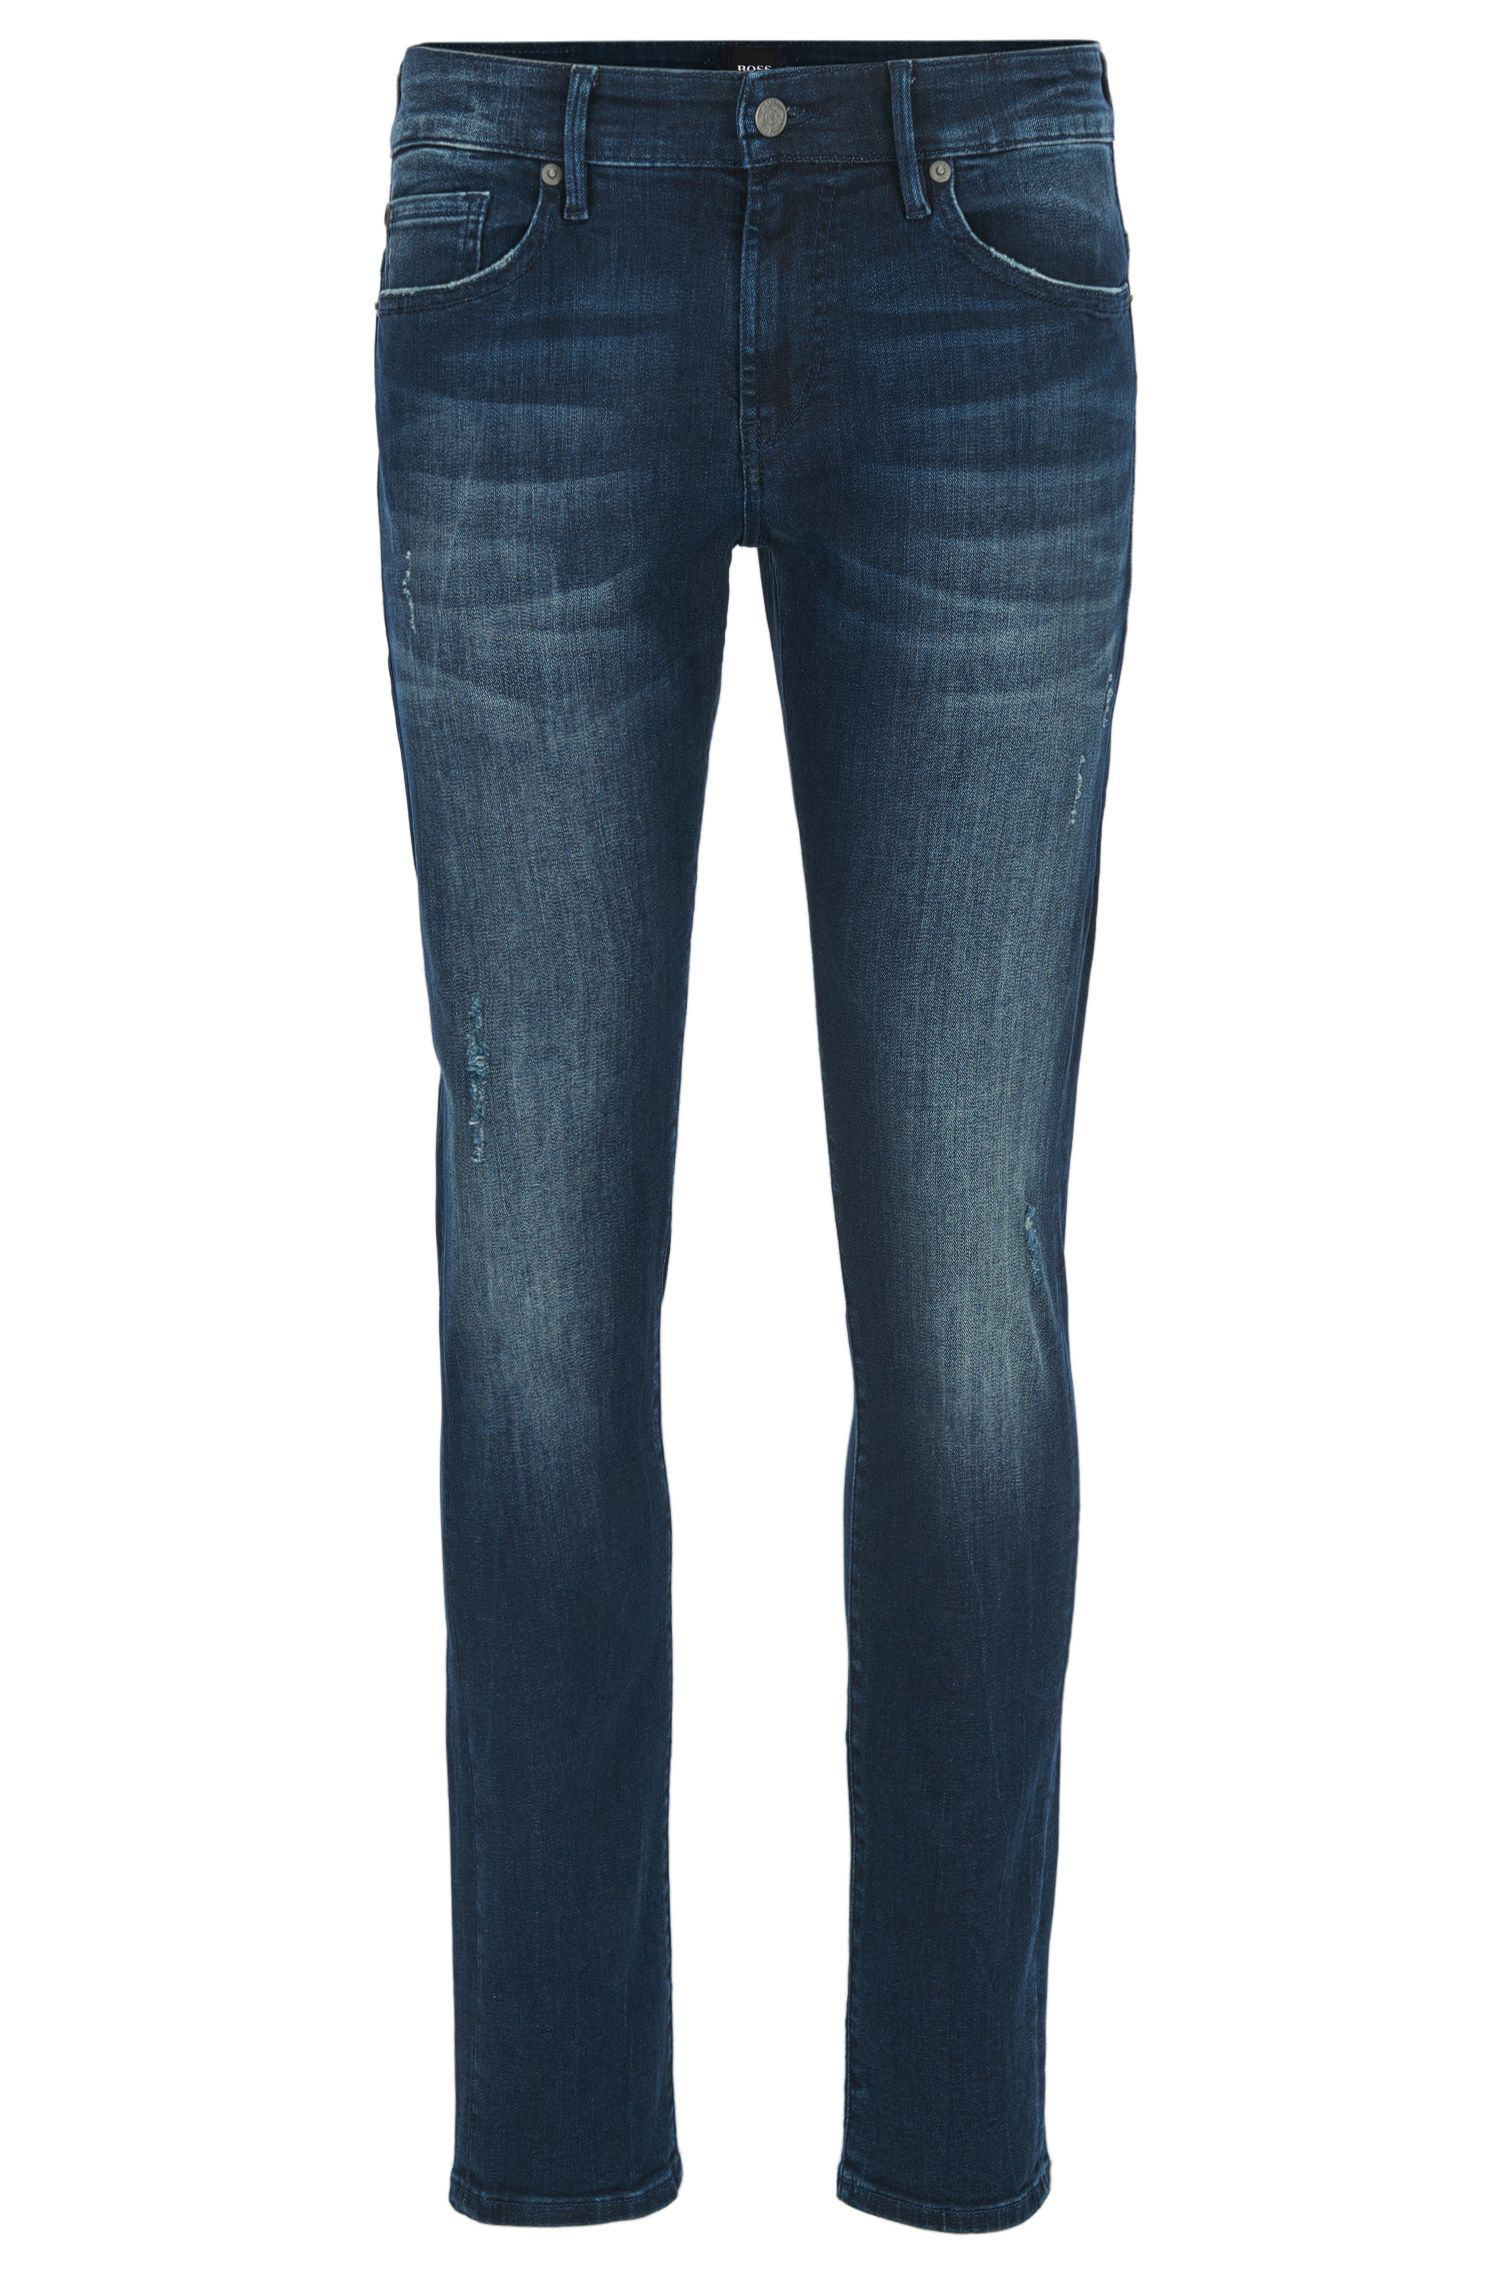 Skinny-fit super-stretch jeans in deep indigo